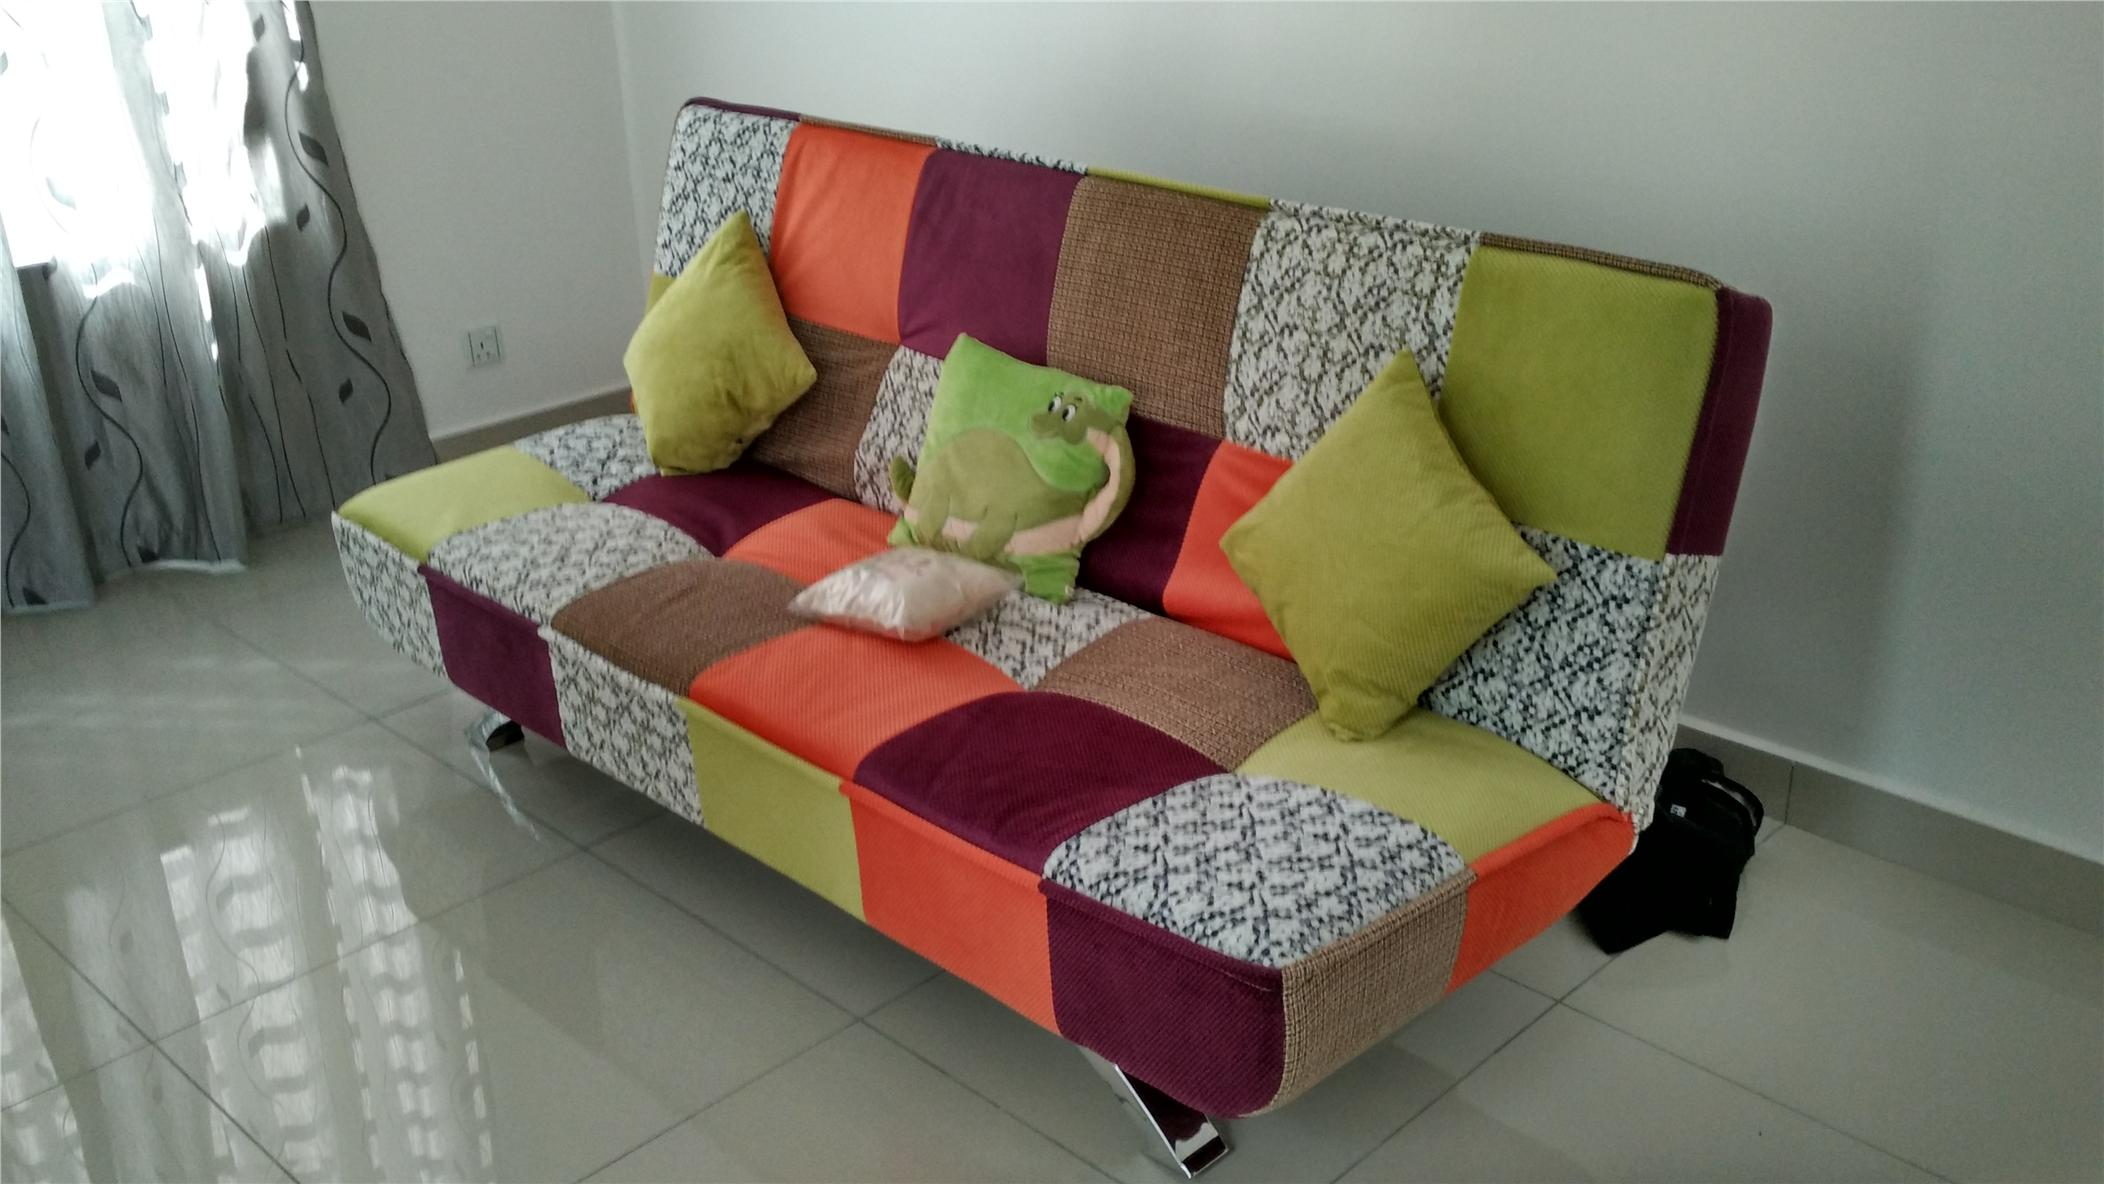 sofa furniture sale malaysia diy rv bed patchwork penang end time 7 18 2017 6 15 pm lelong my